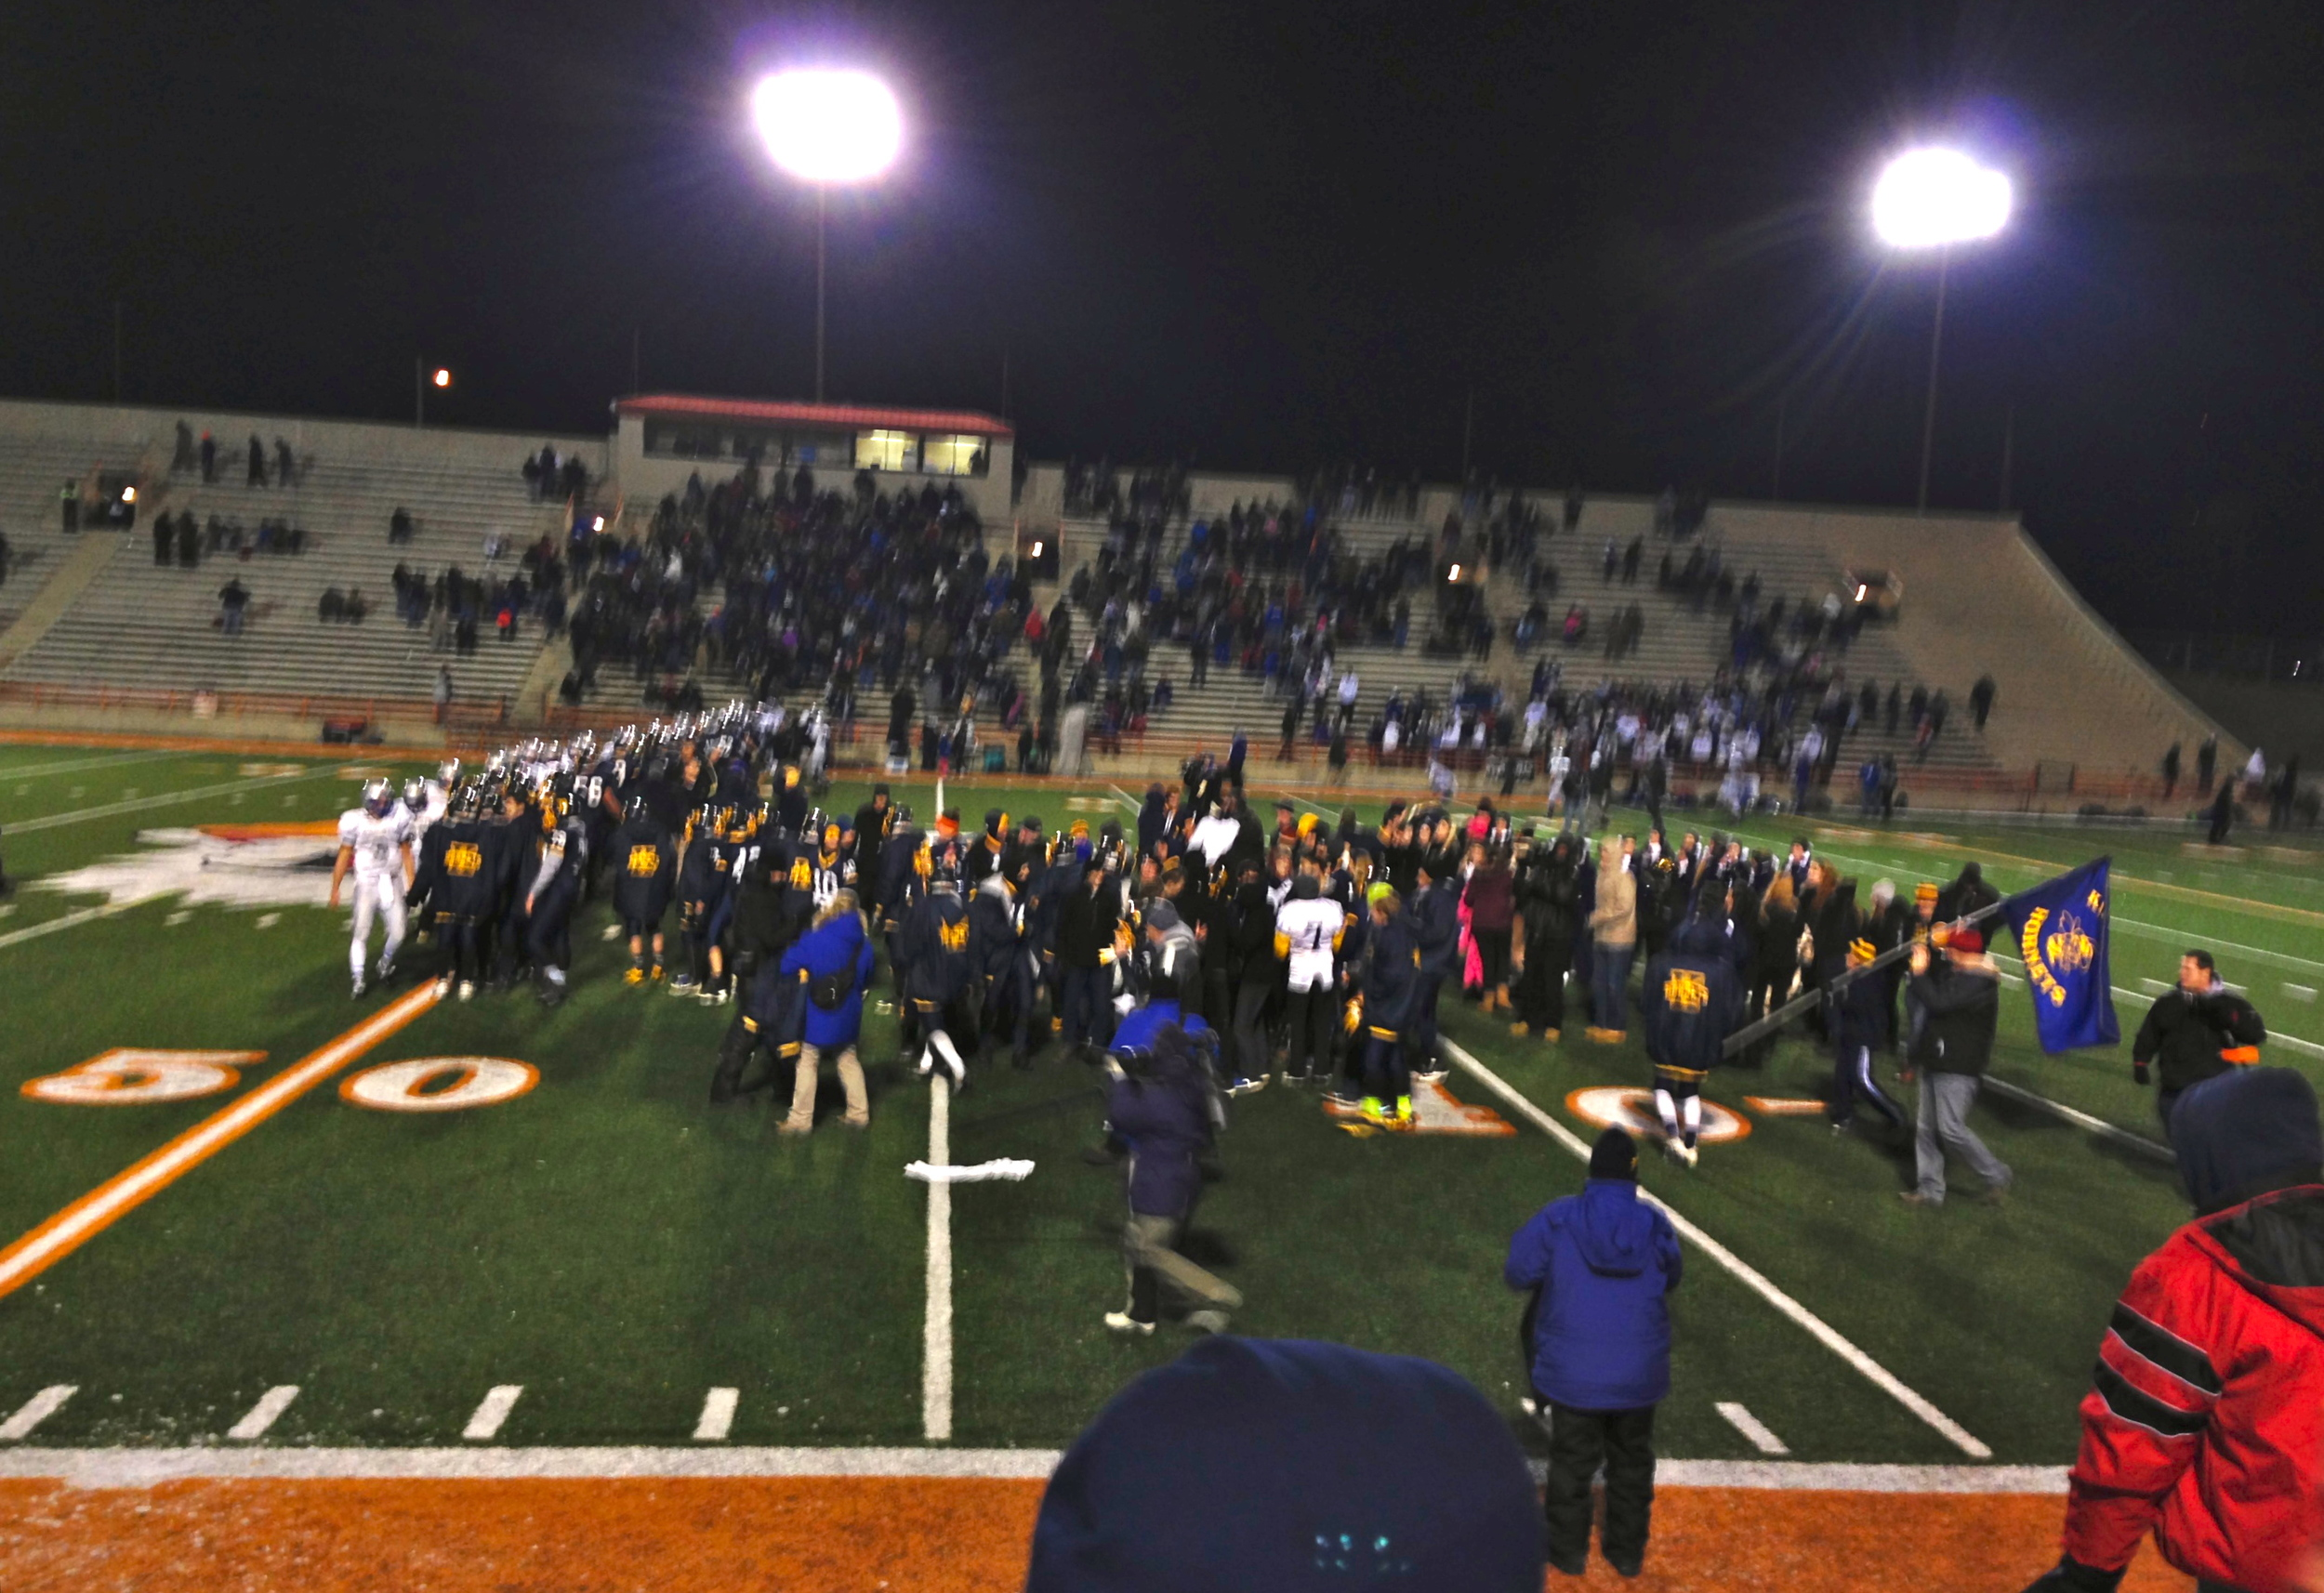 Kirtland family and friends run on to the field to congratulate their team on their win over Bishop Ready last night.